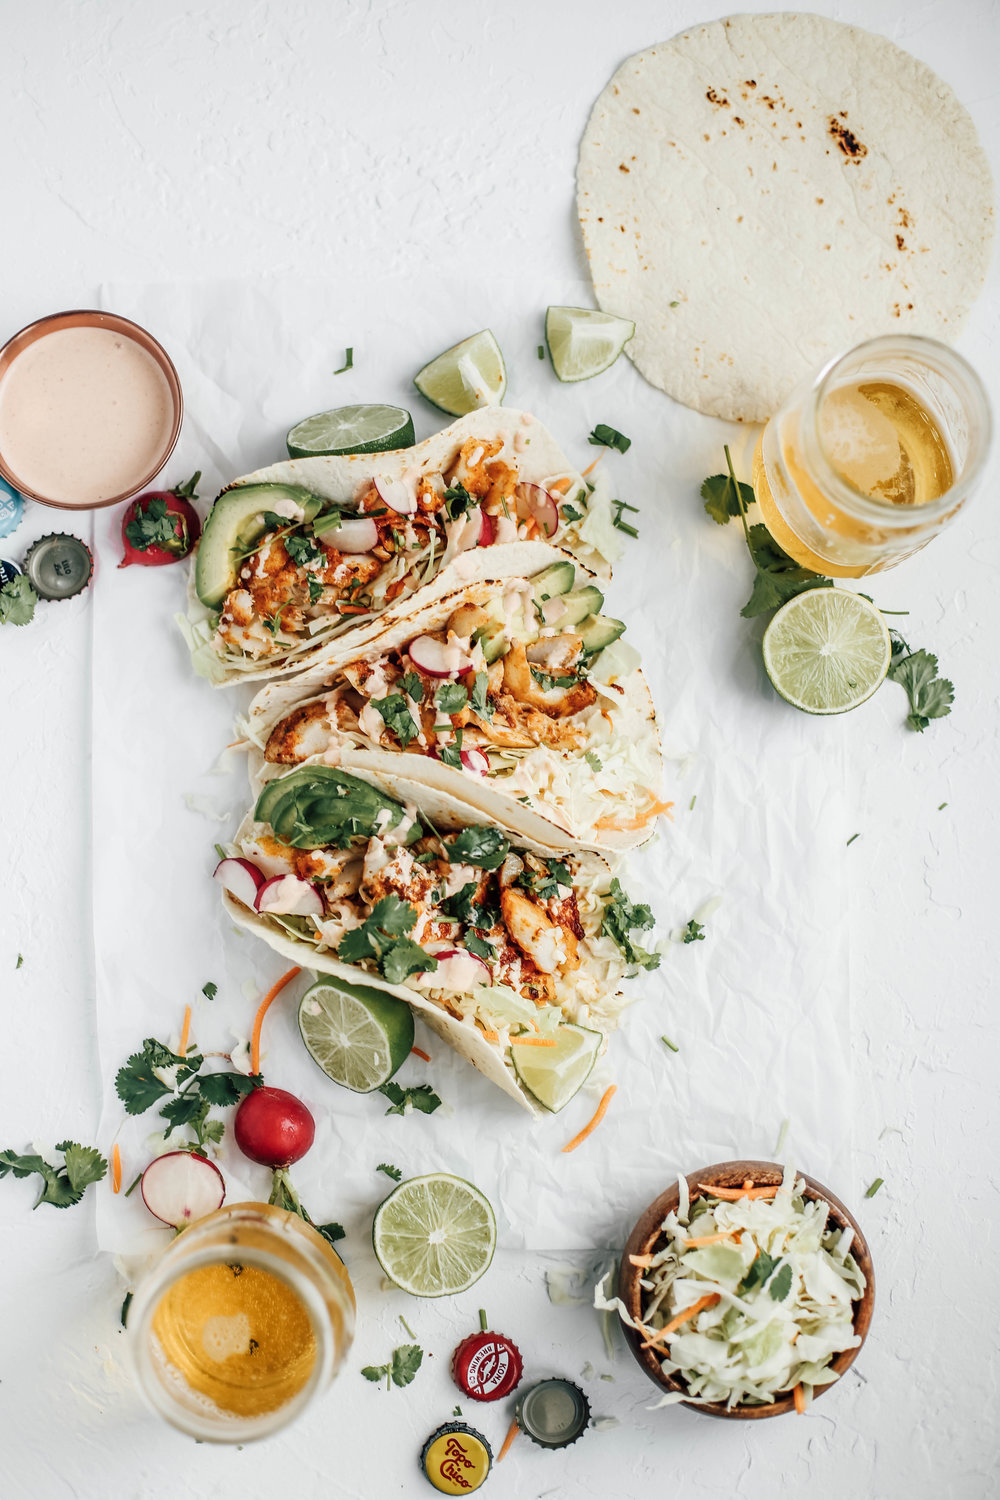 Blackened Cod Fish Tacos with Sriracha Lime Crema-8.jpg